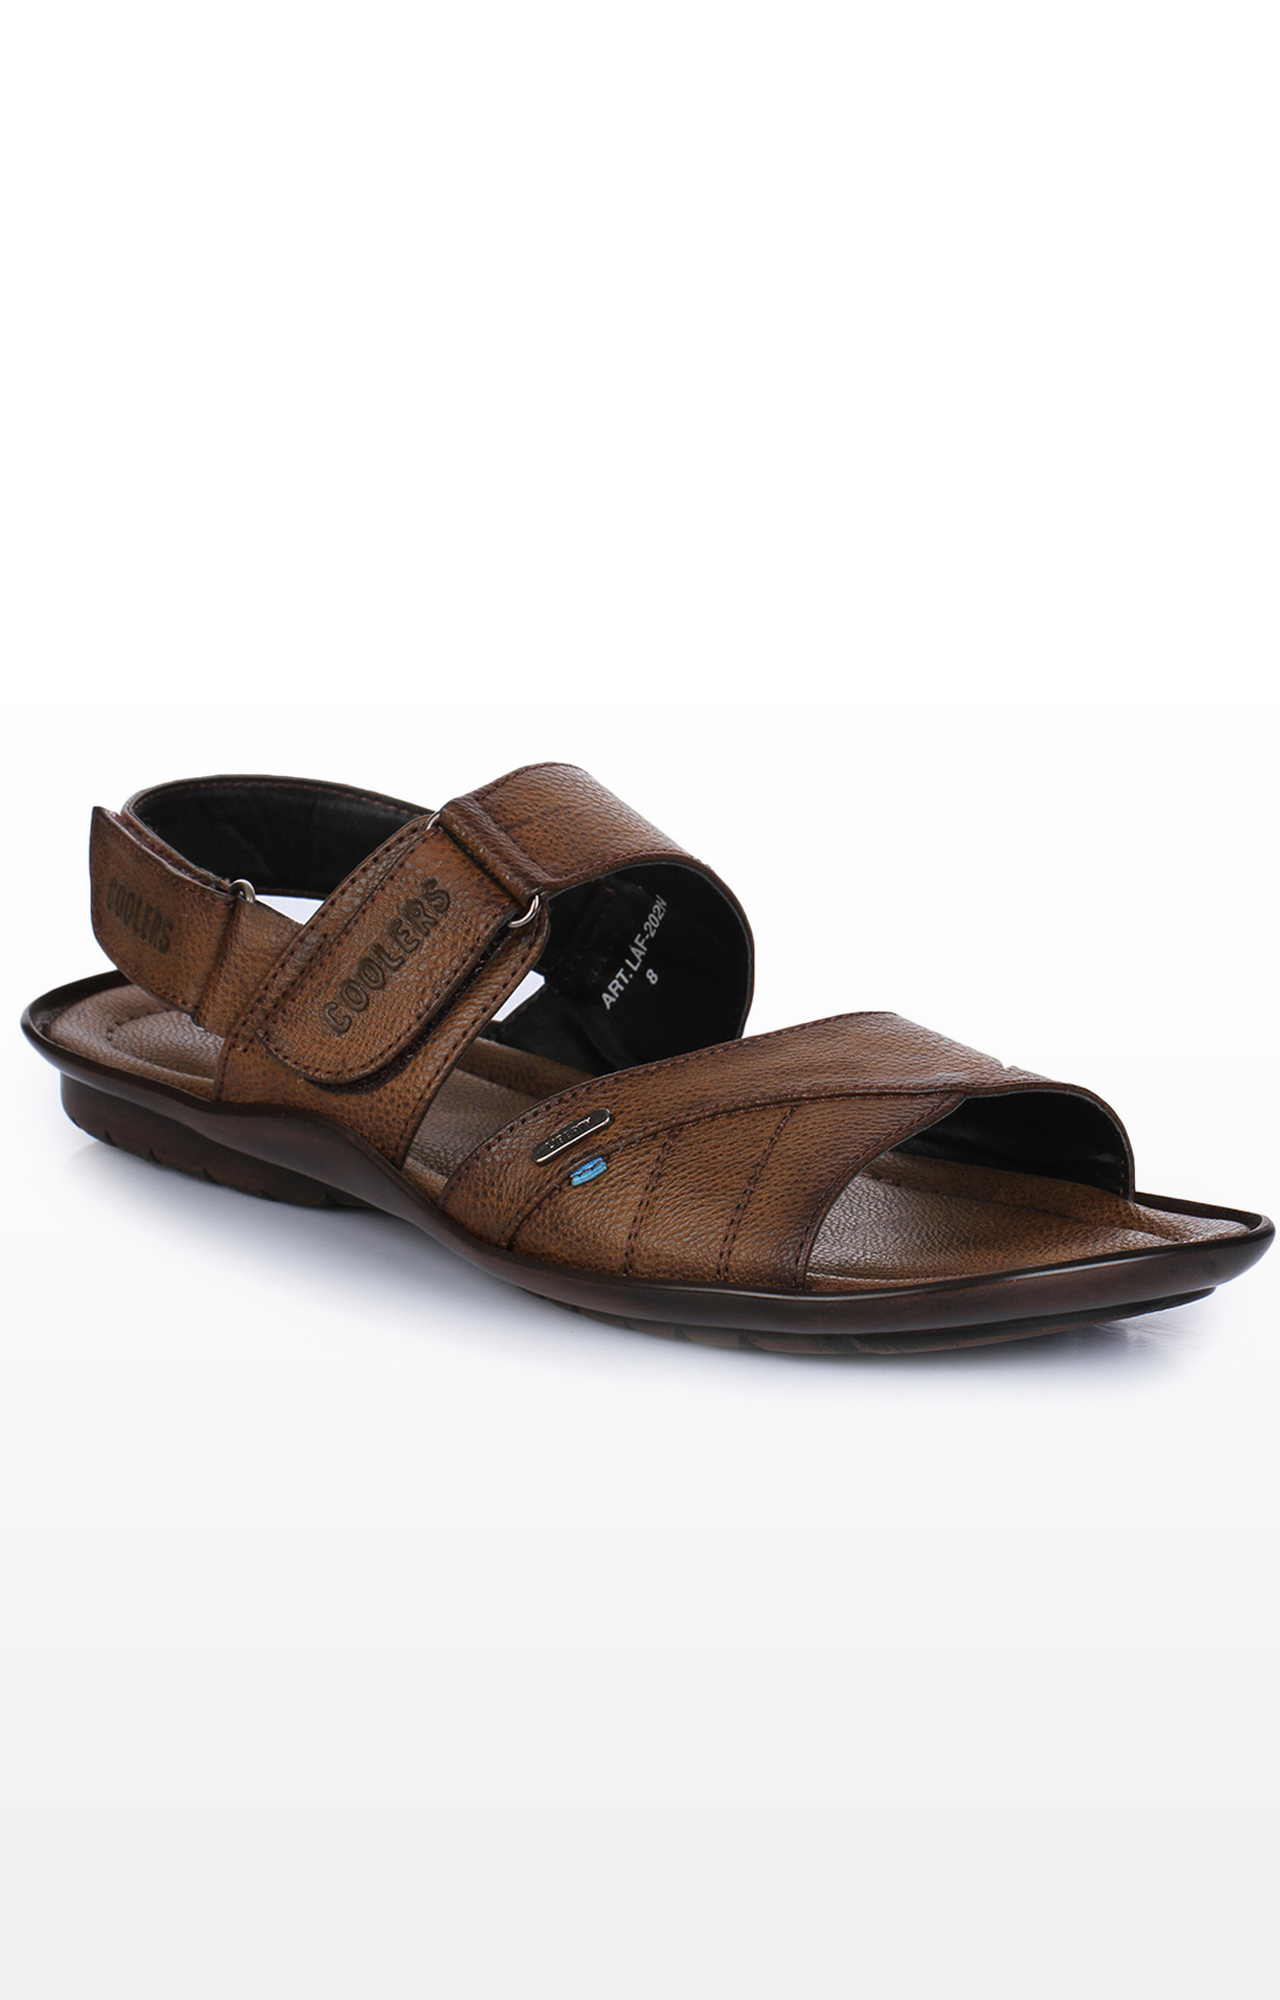 Liberty | Coolers by Liberty Brown Sandals